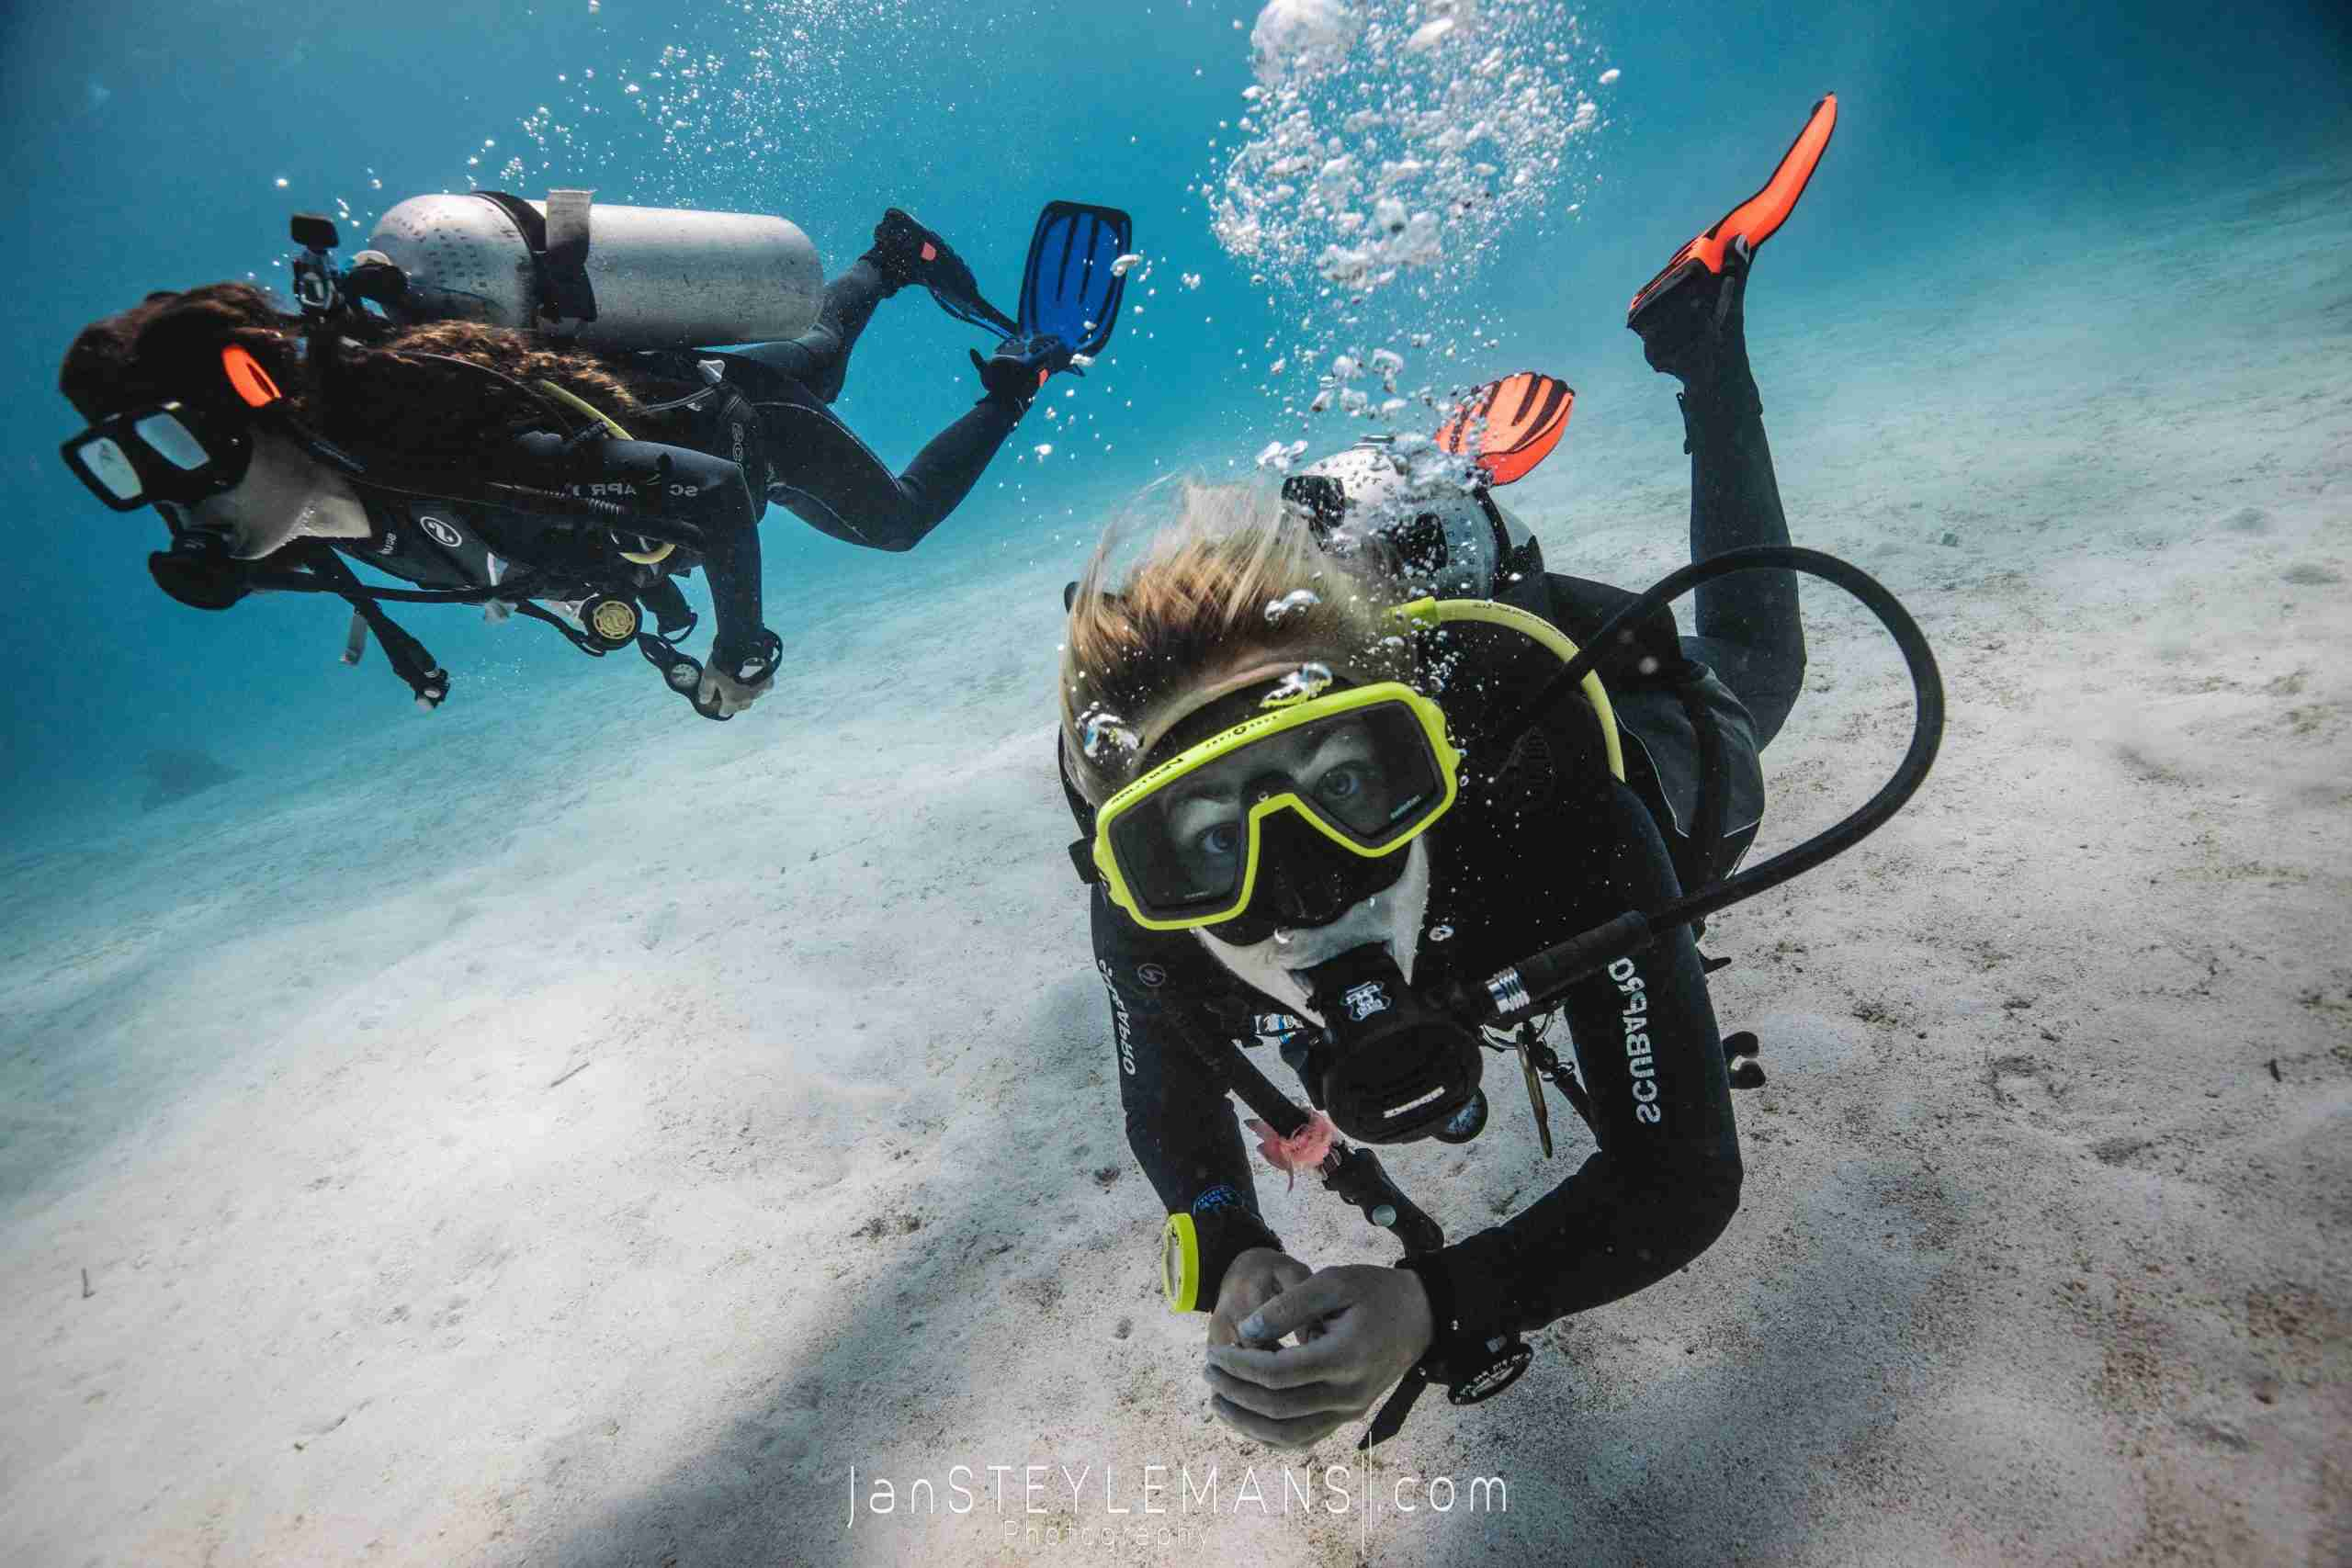 Diver underwater on the way to a new adventure.